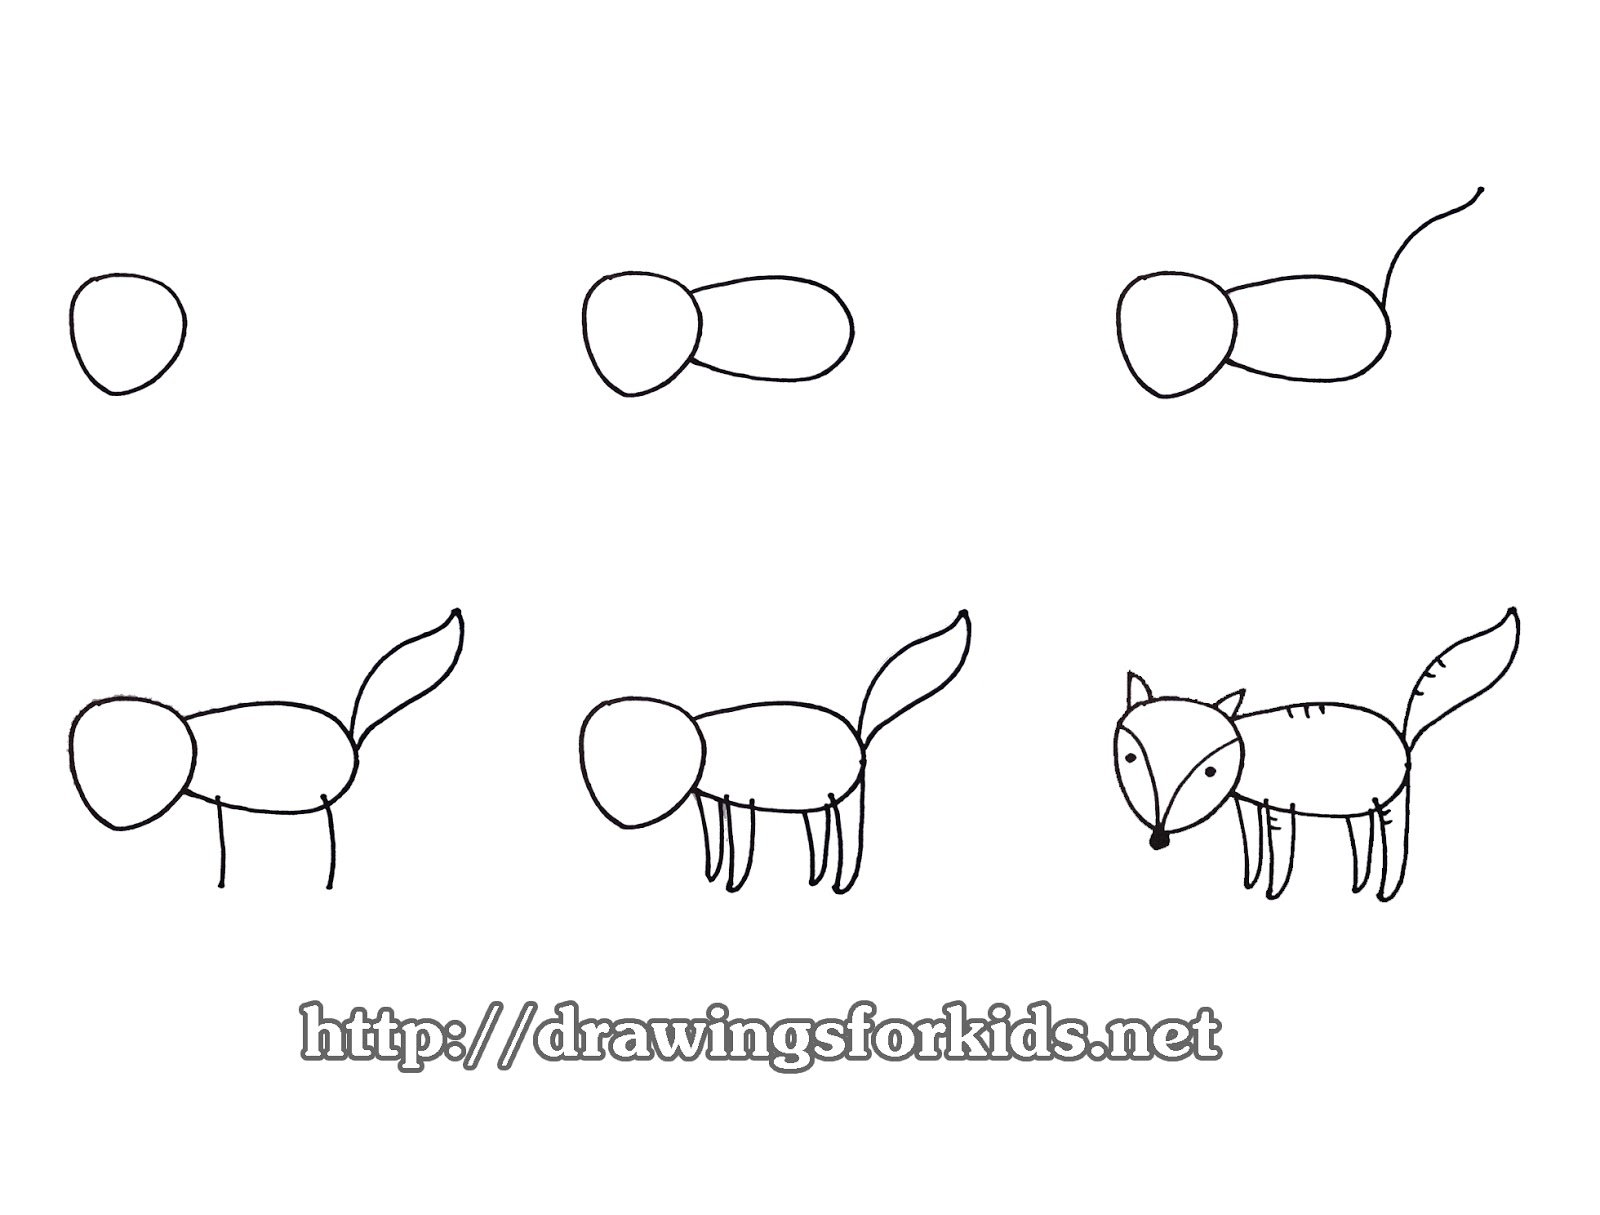 How To Draw A Fox For Kids Drawingsforkids Net